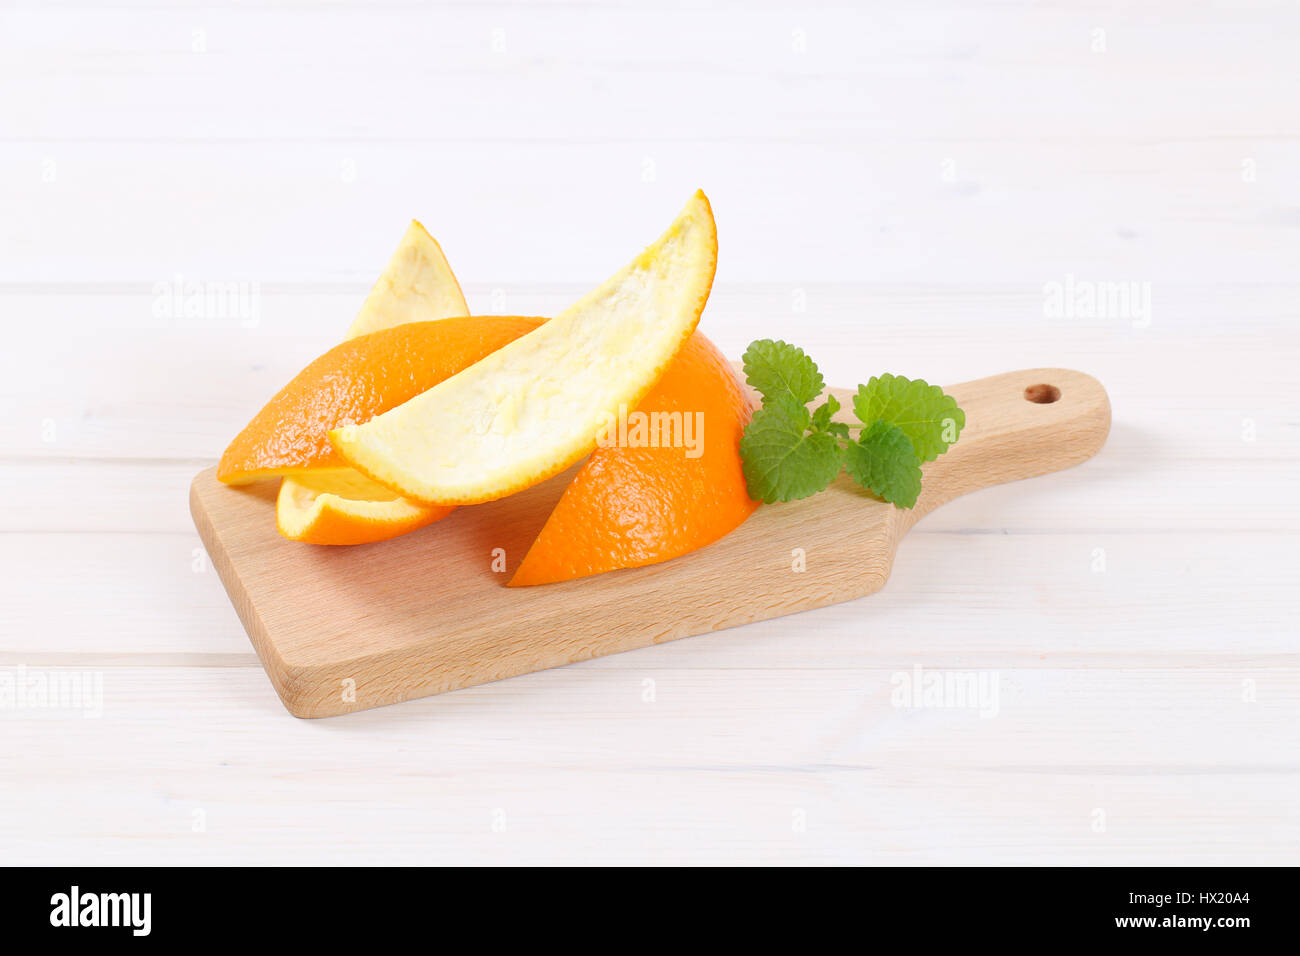 pile of orange peels on wooden cutting board - Stock Image